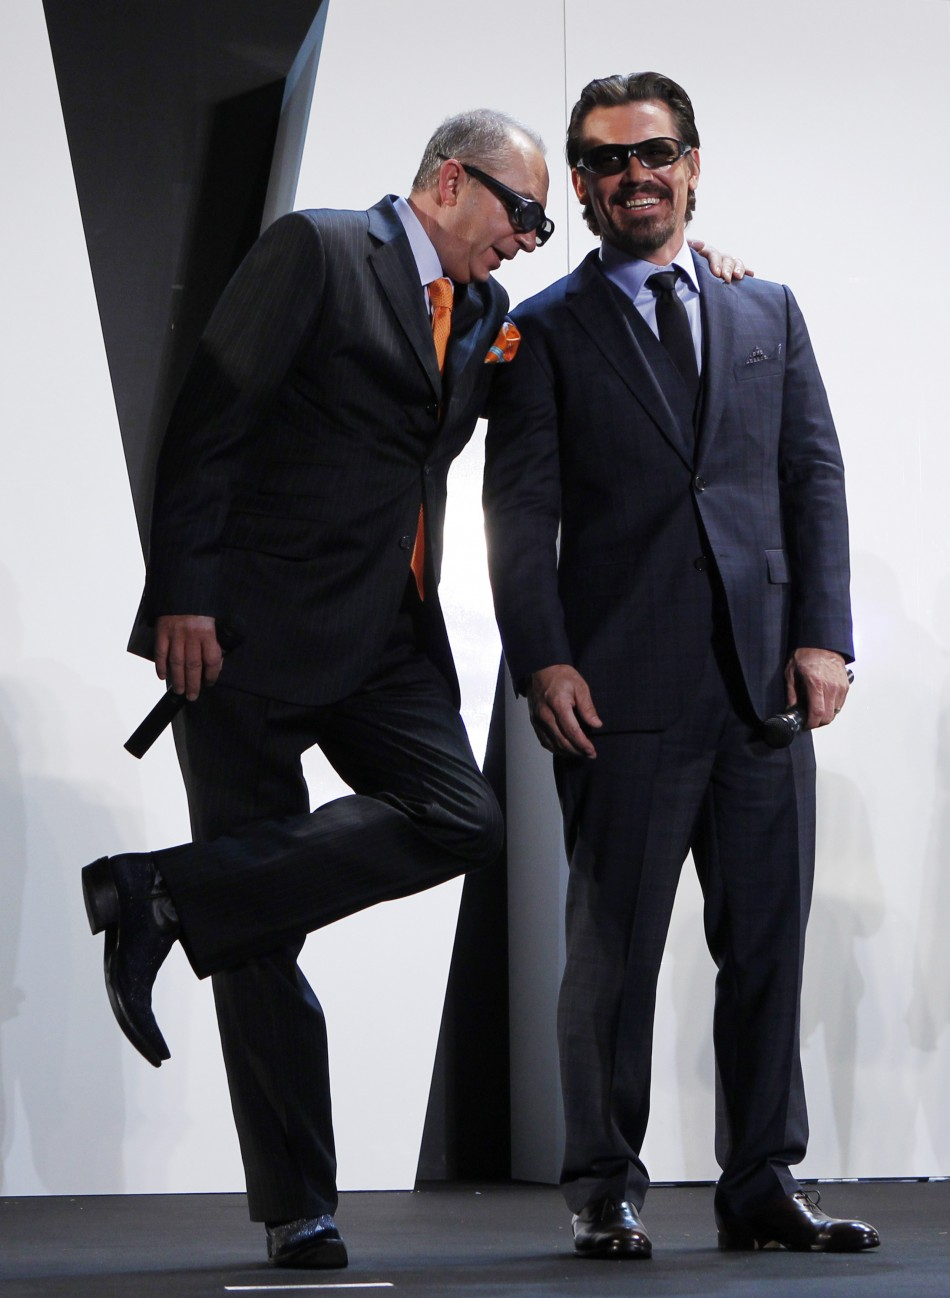 Director Barry Sonnenfeld leans on his cast member Josh Brolin to stretch his leg on a stage at a red carpet event in Japan